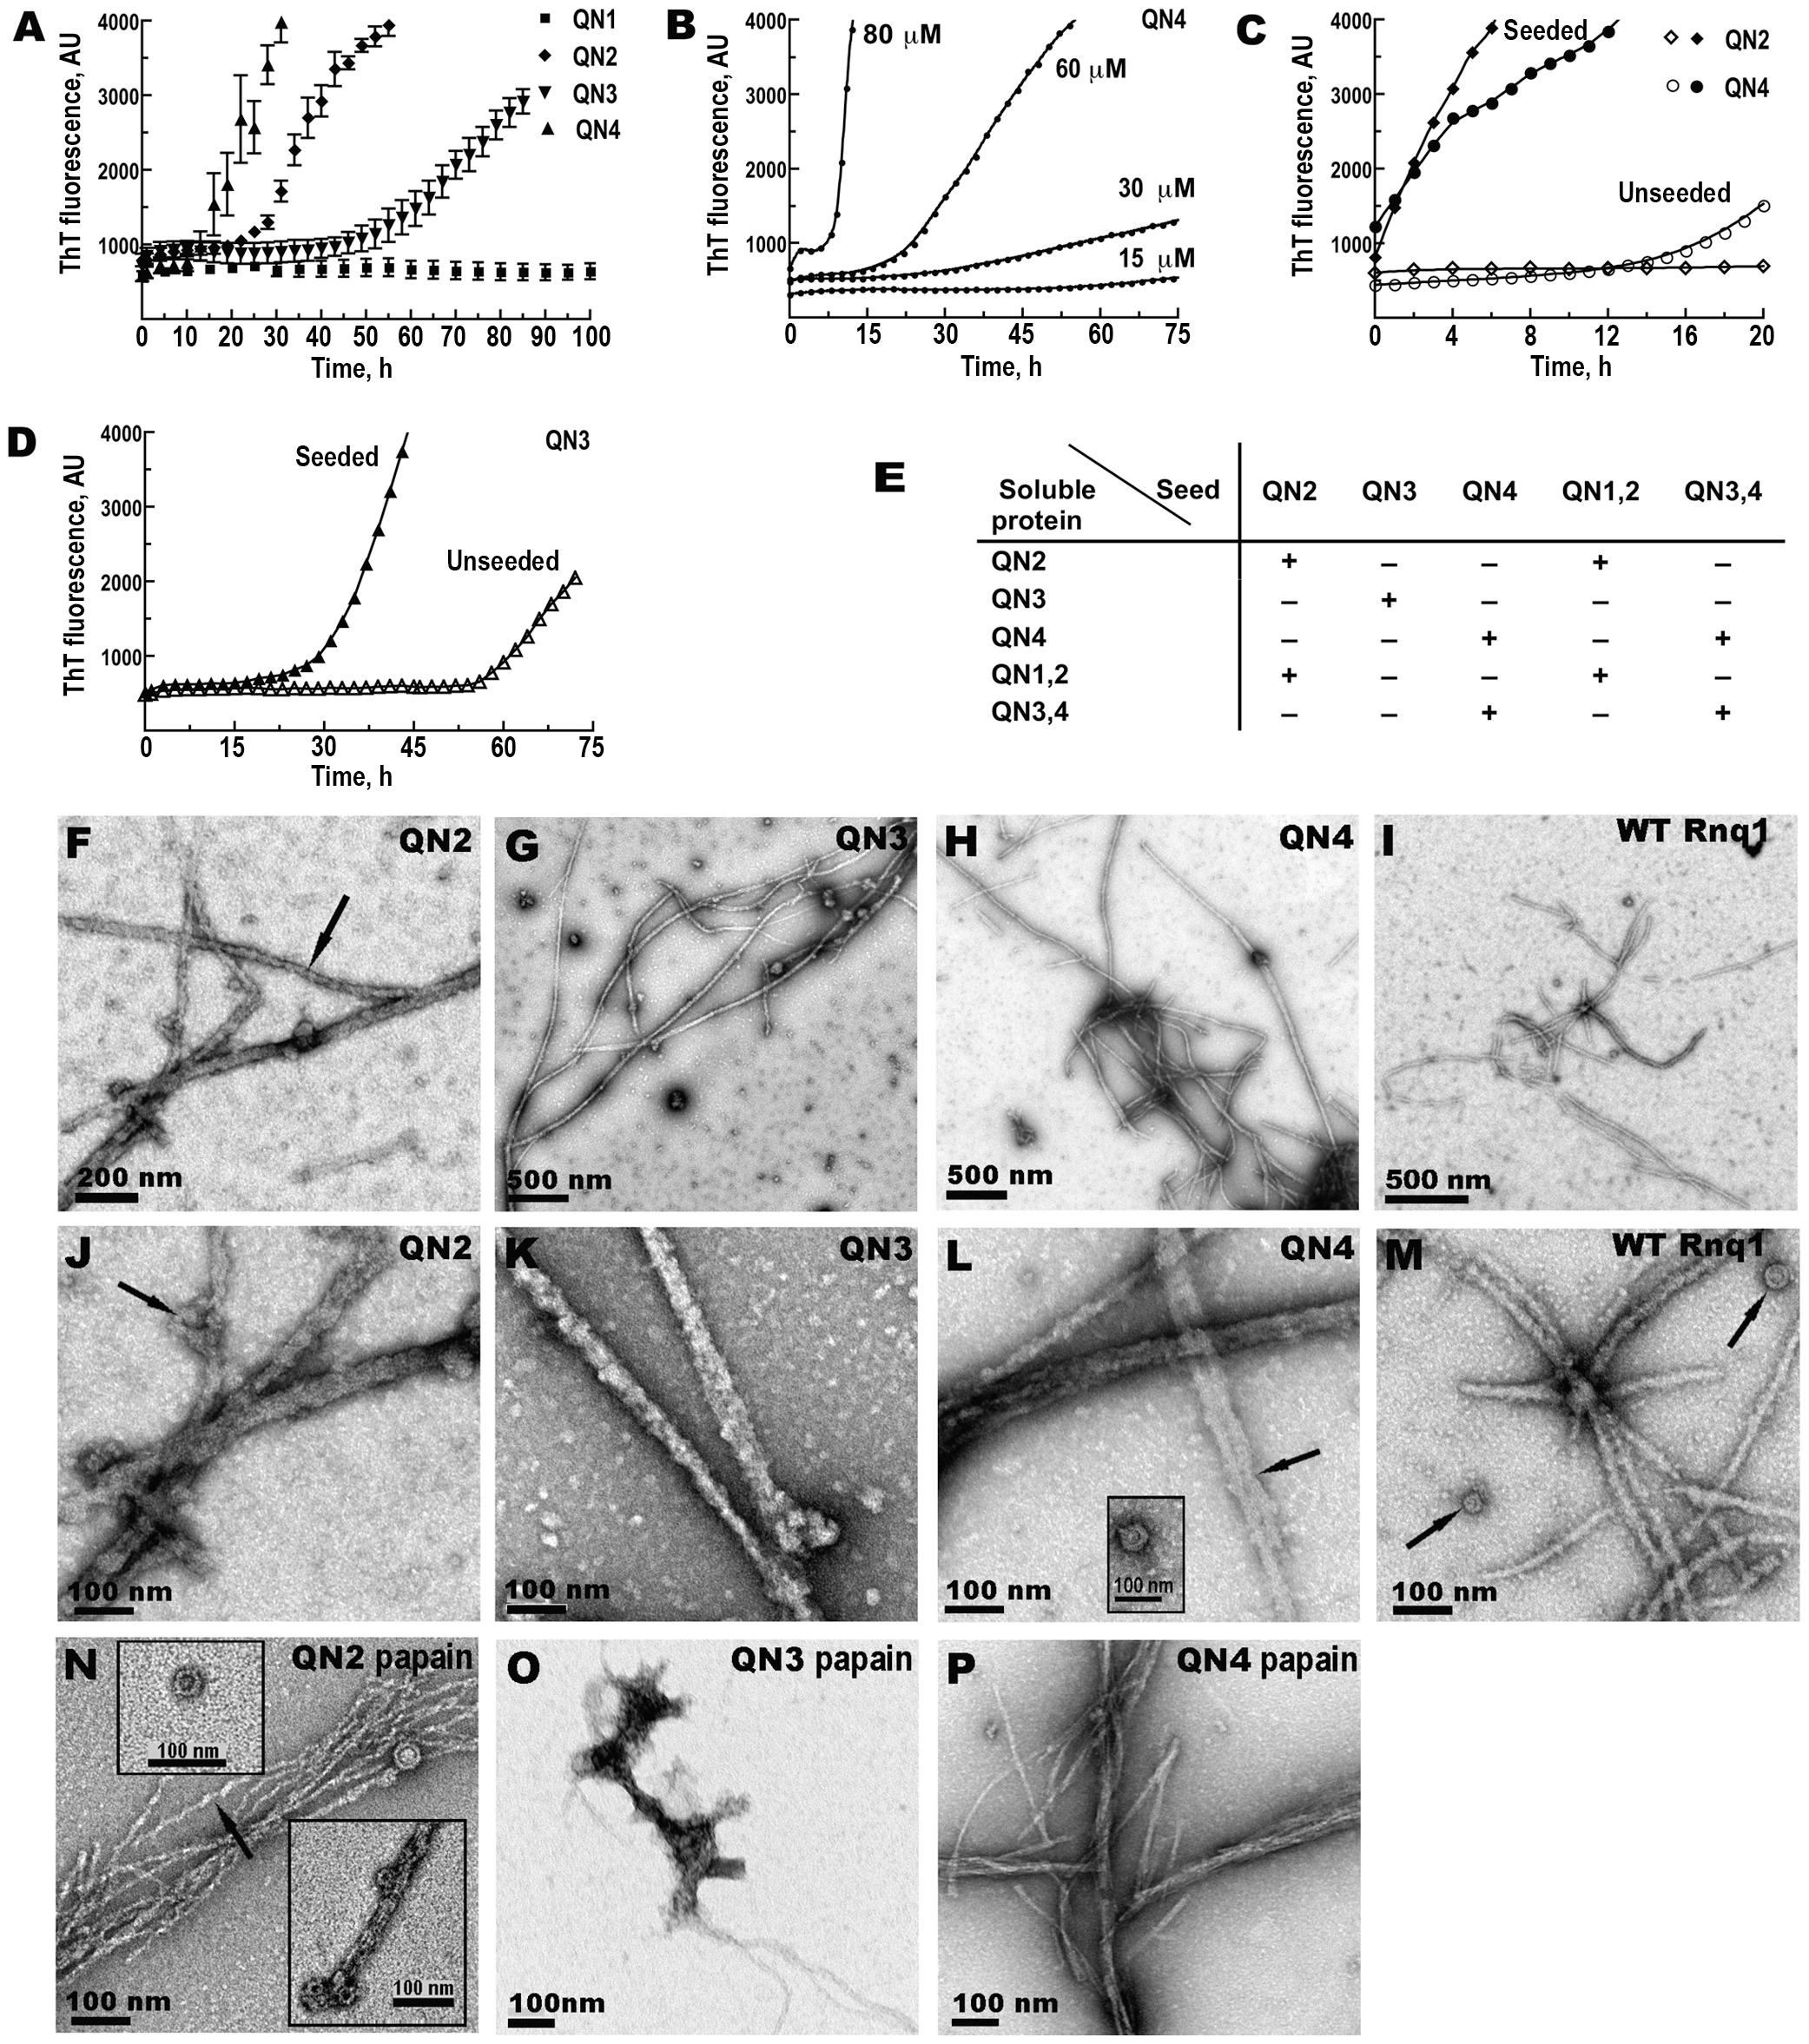 QN2 (ΔB1C2E4), QN3 (ΔB1C2E4), and QN4 (ΔB1C2D3), but not QN1 (ΔC2D3E4), can drive amyloid fiber formation <i>in vitro</i>.